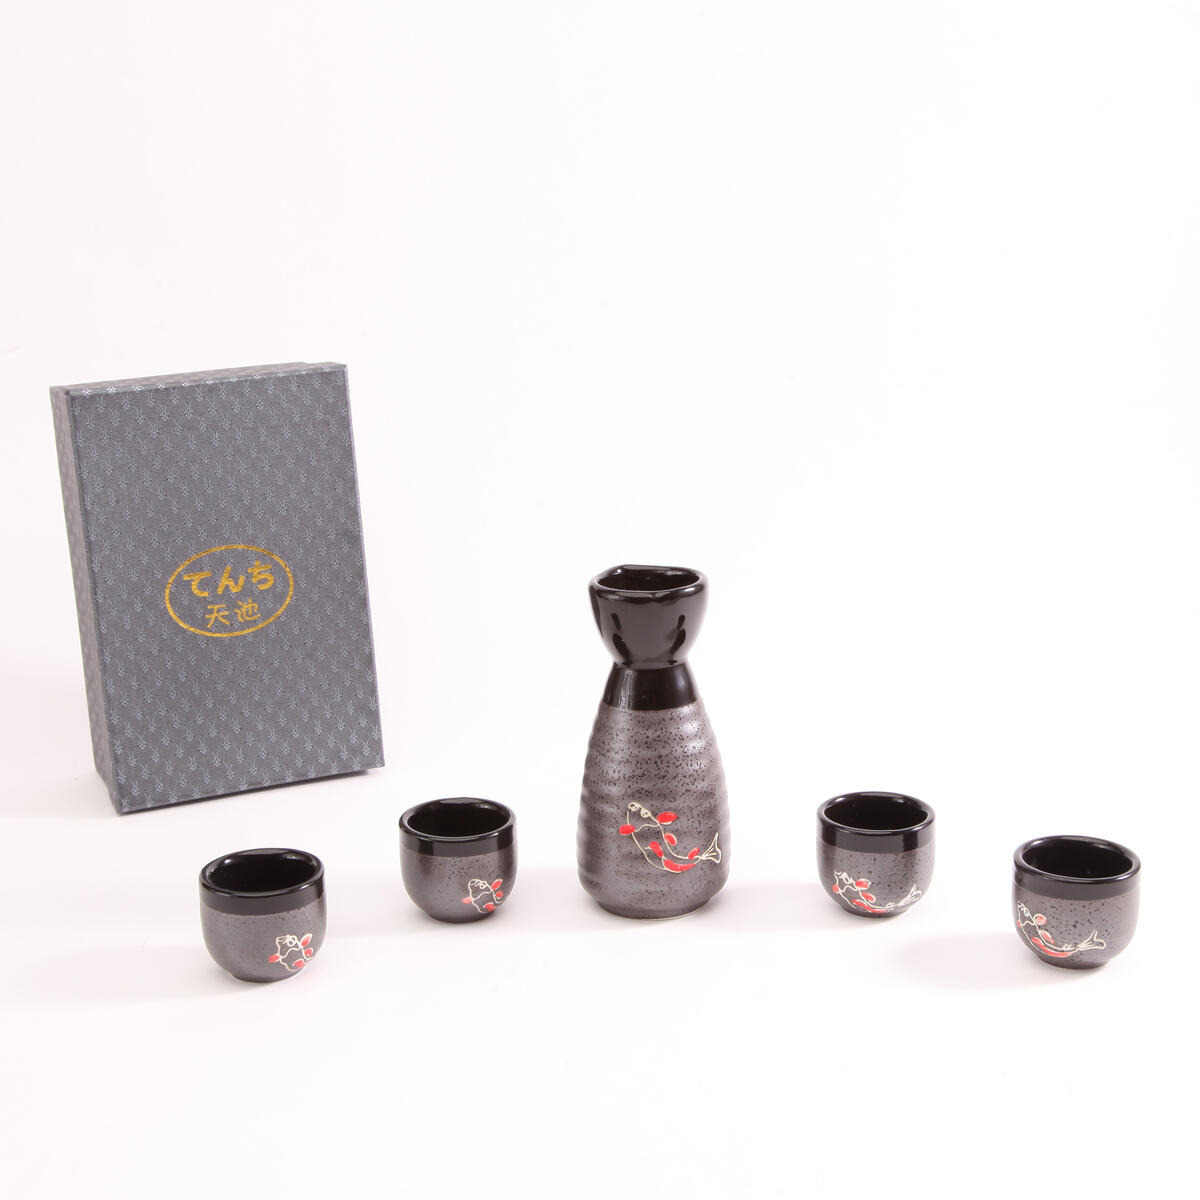 Ceramic Japanese Sake Set of 5, Hand Painted, variety colors